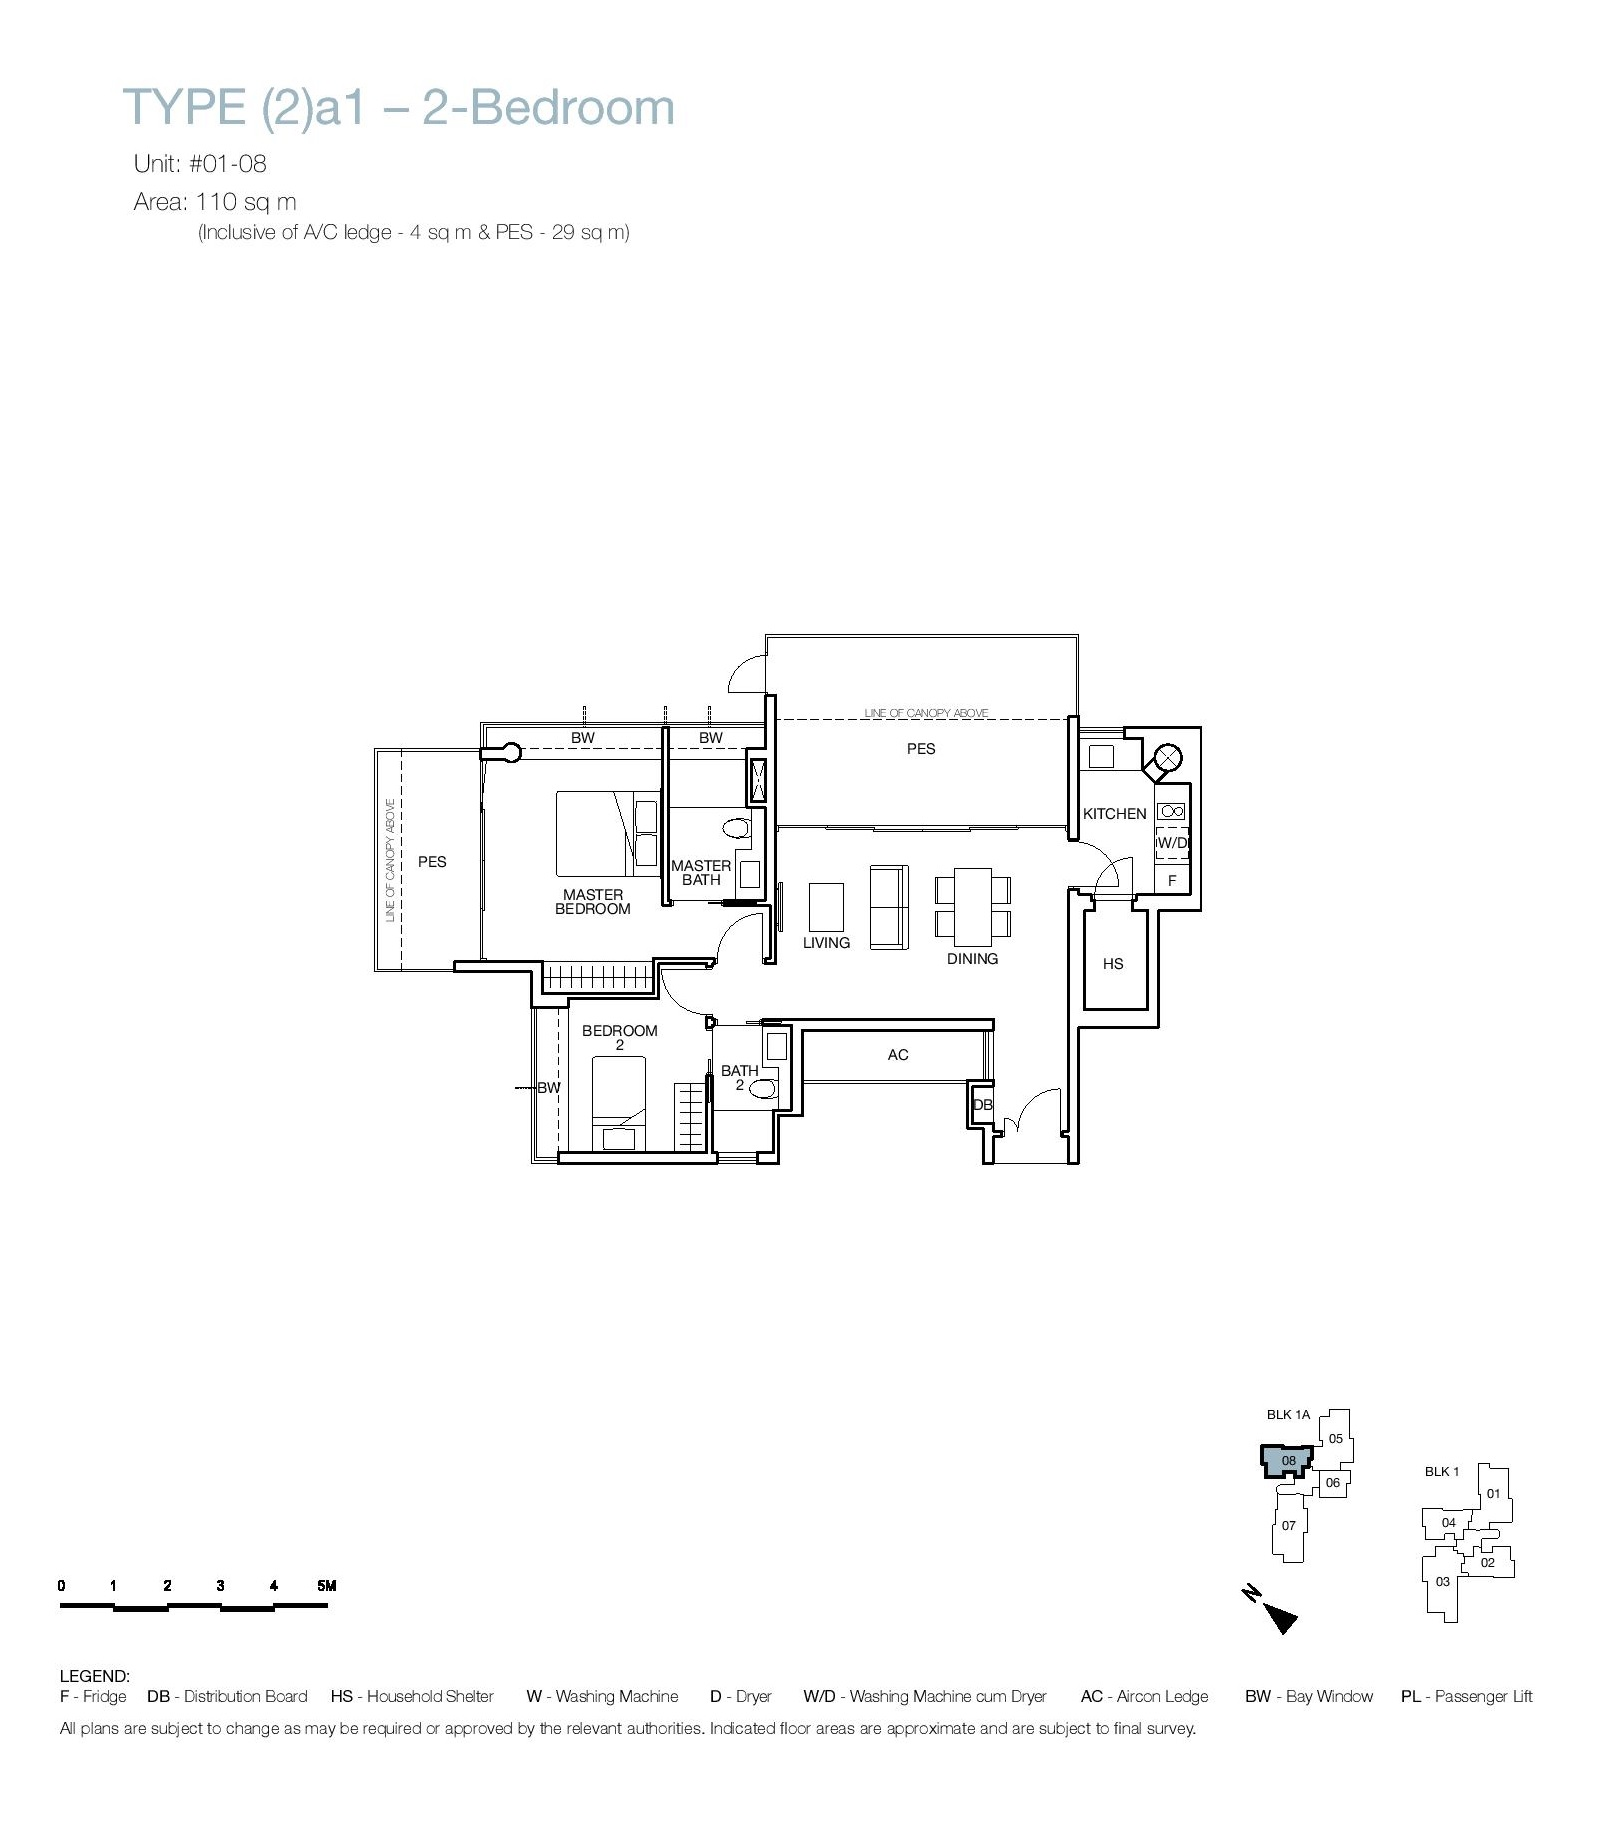 One Balmoral 2 Bedroom Floor Type (2)a1 Plans